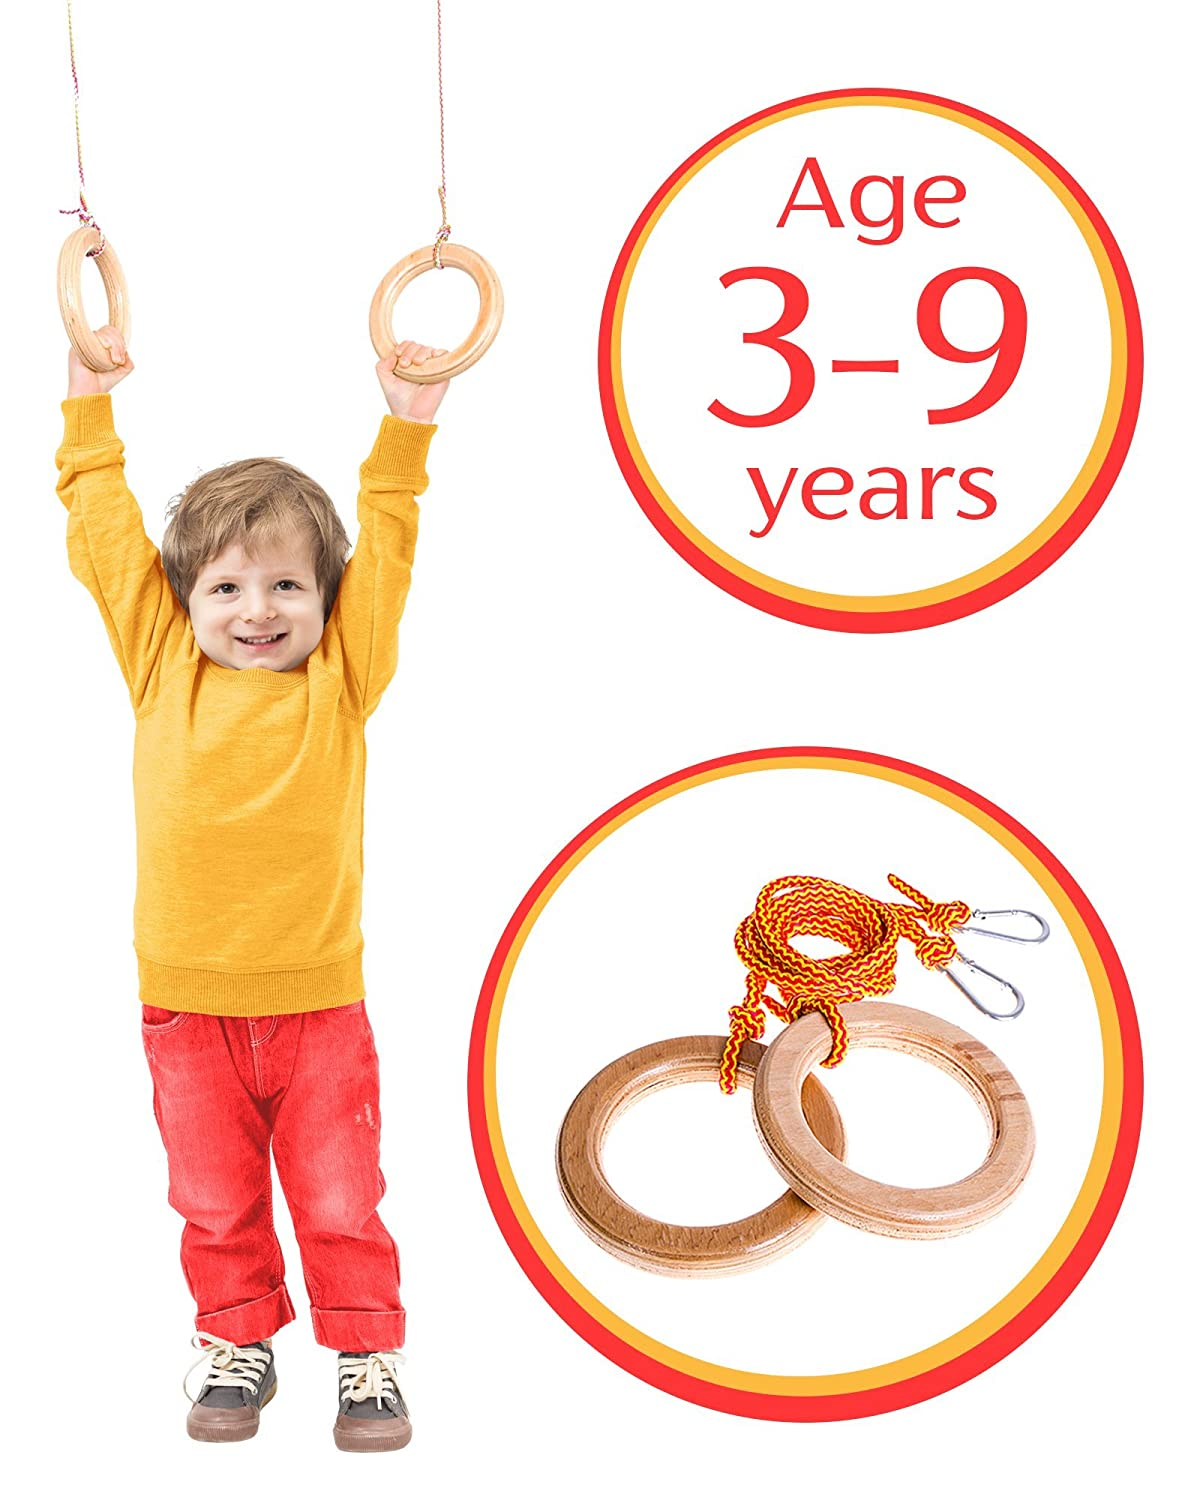 Monkey rings Accessories for swing set jungle gym Gymnastic toys for indoor play gym playground Gymnastics equipment for home for kids and toddler EVAS Kids gym rings